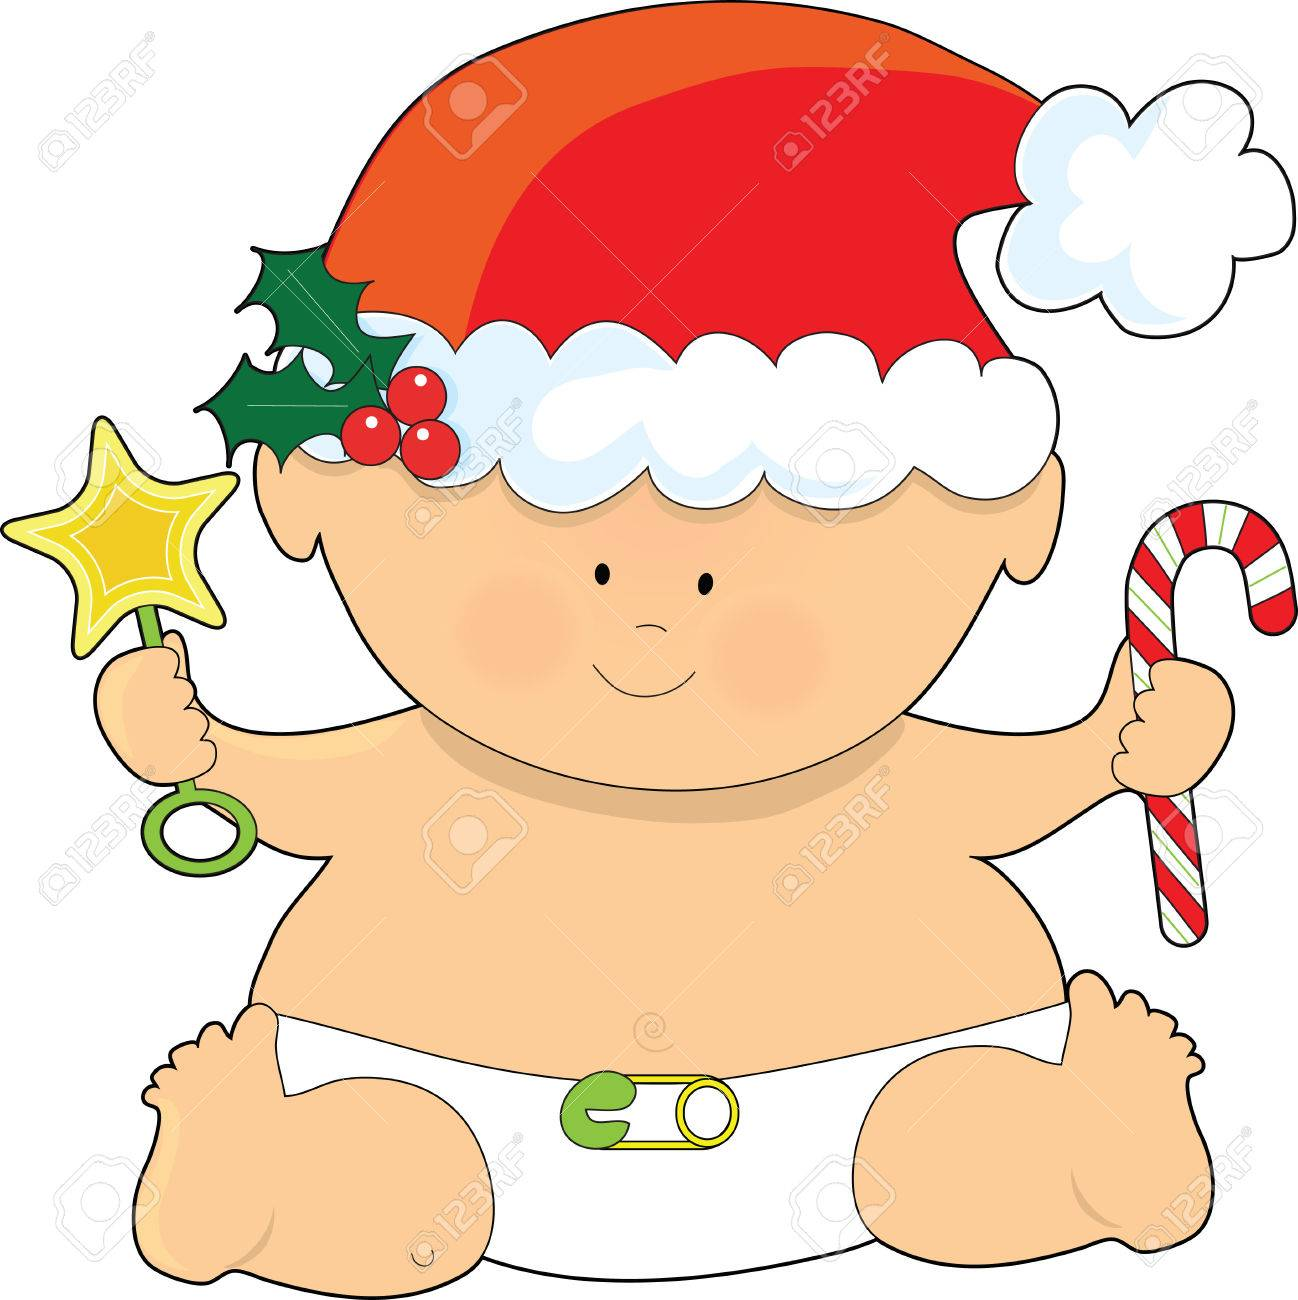 A baby dressed in a Santa hat and holding a candy cane.